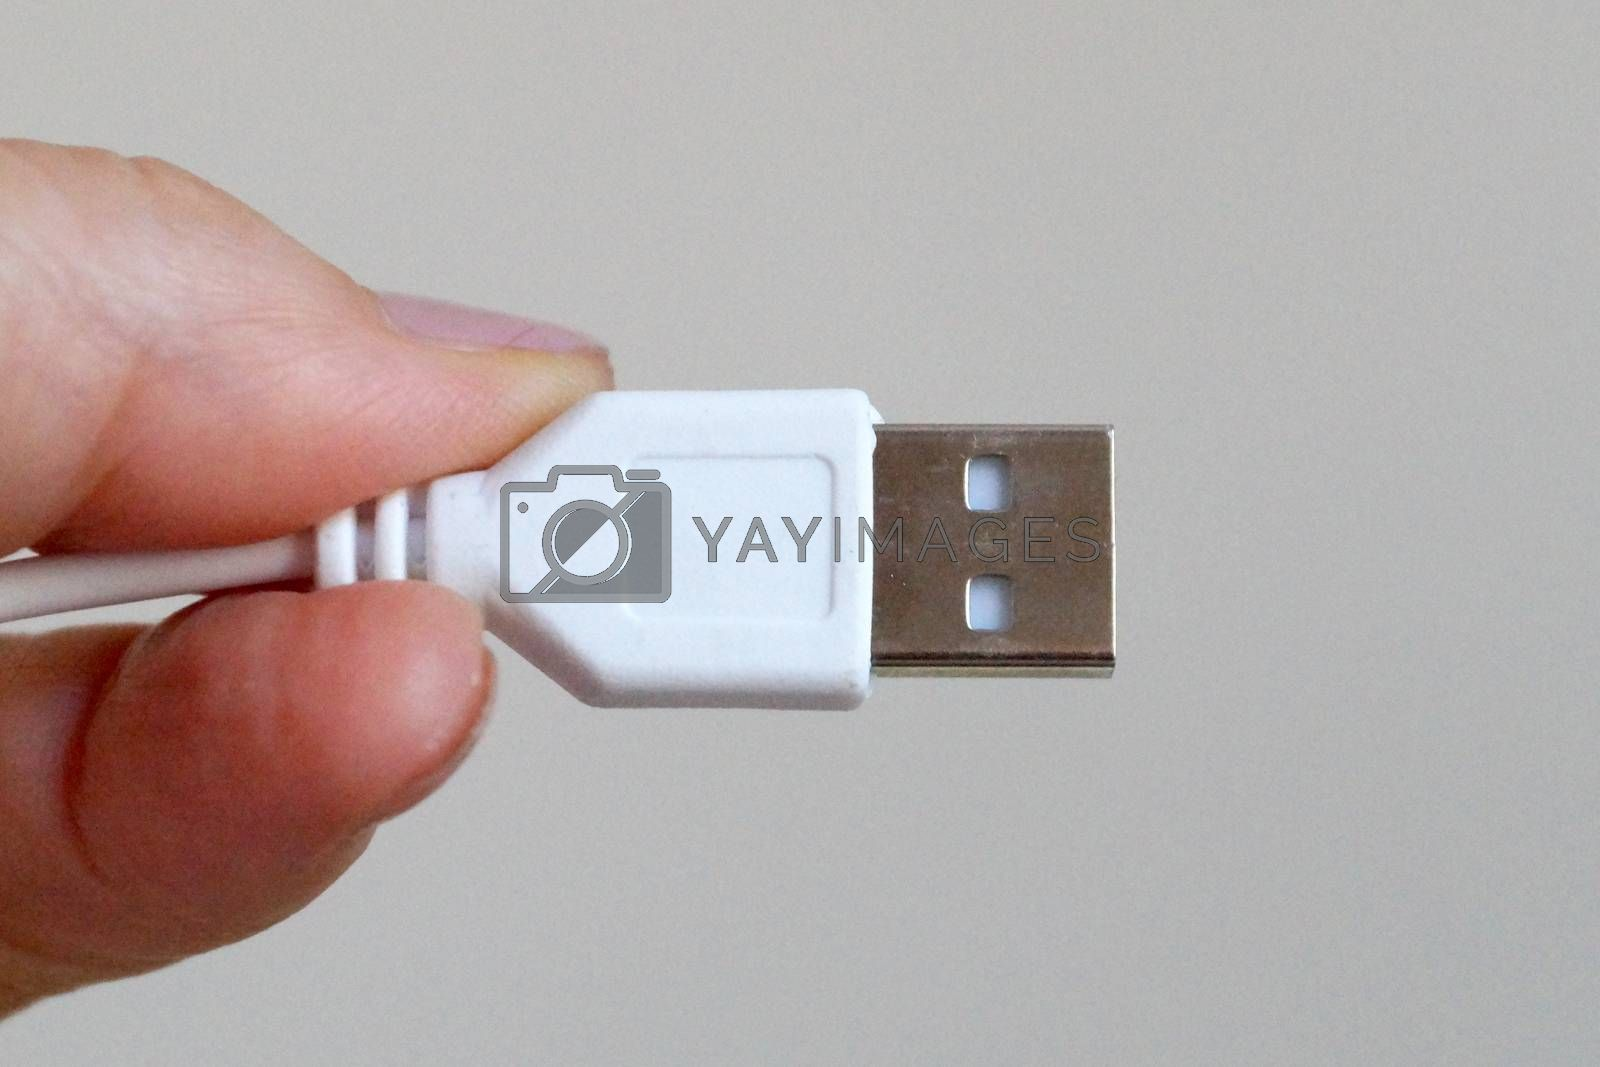 white usb cable in hand close-up